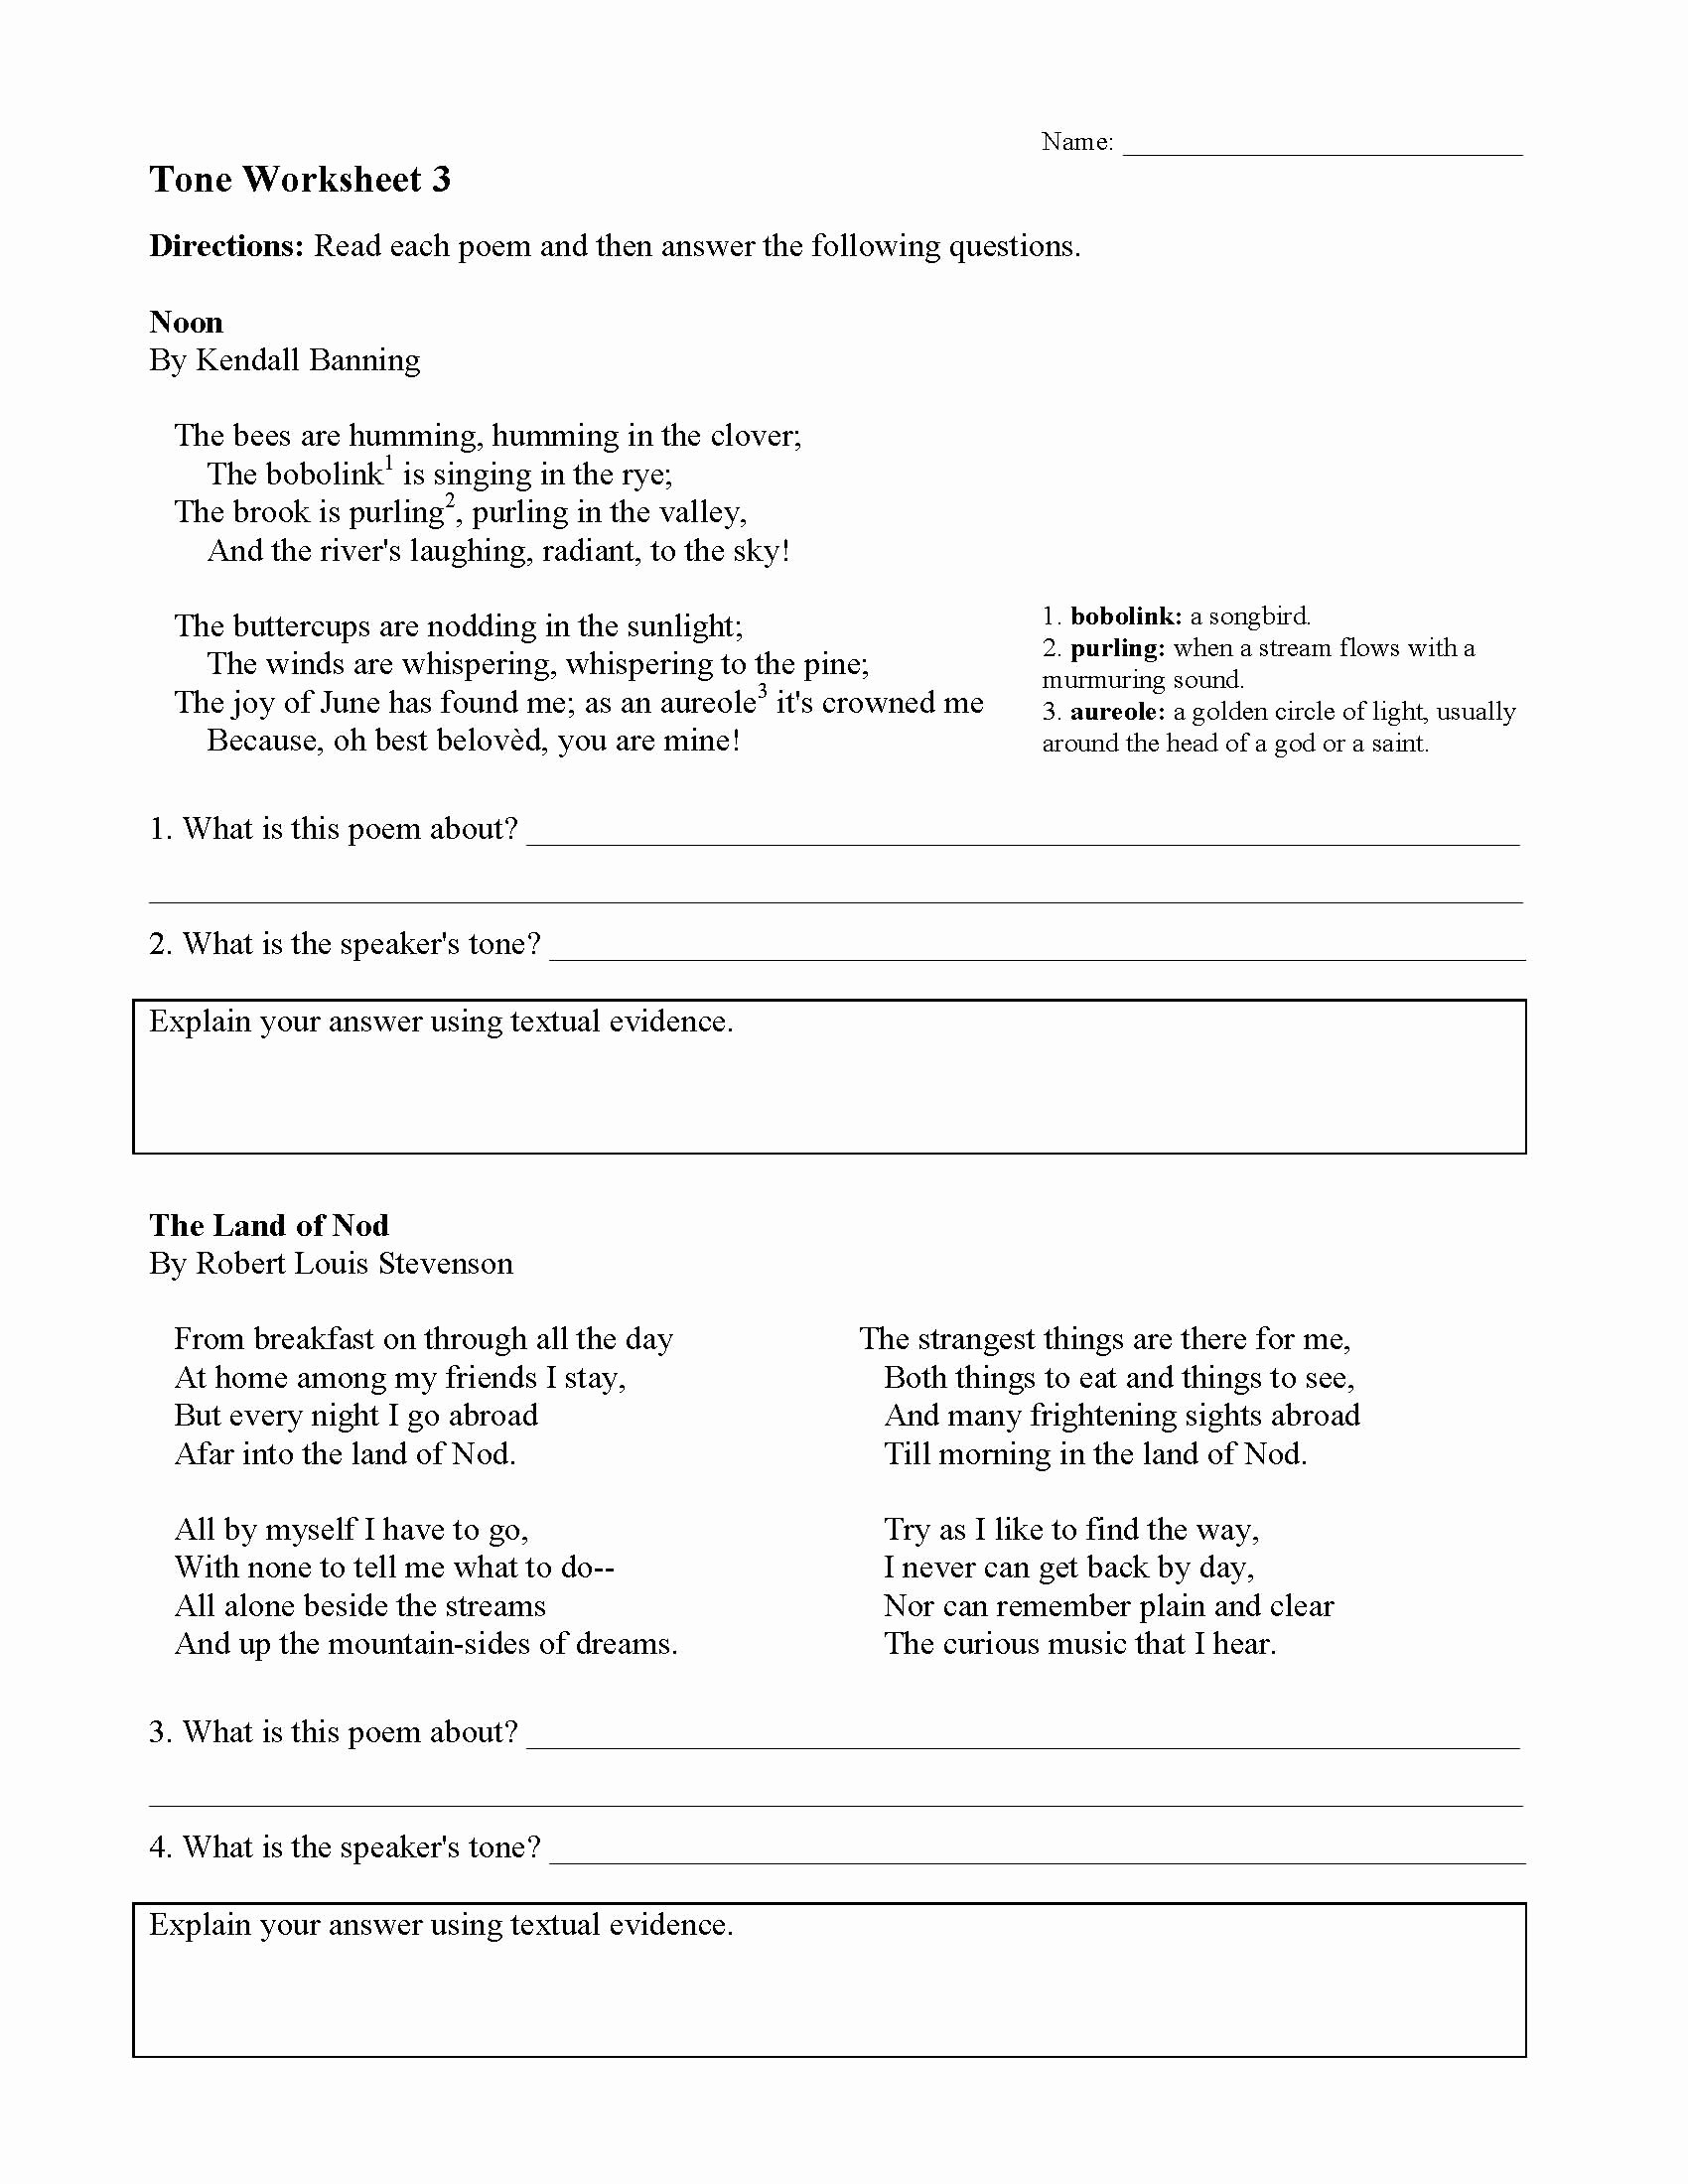 Mood and tone Practice Worksheets Inspirational tone Worksheets